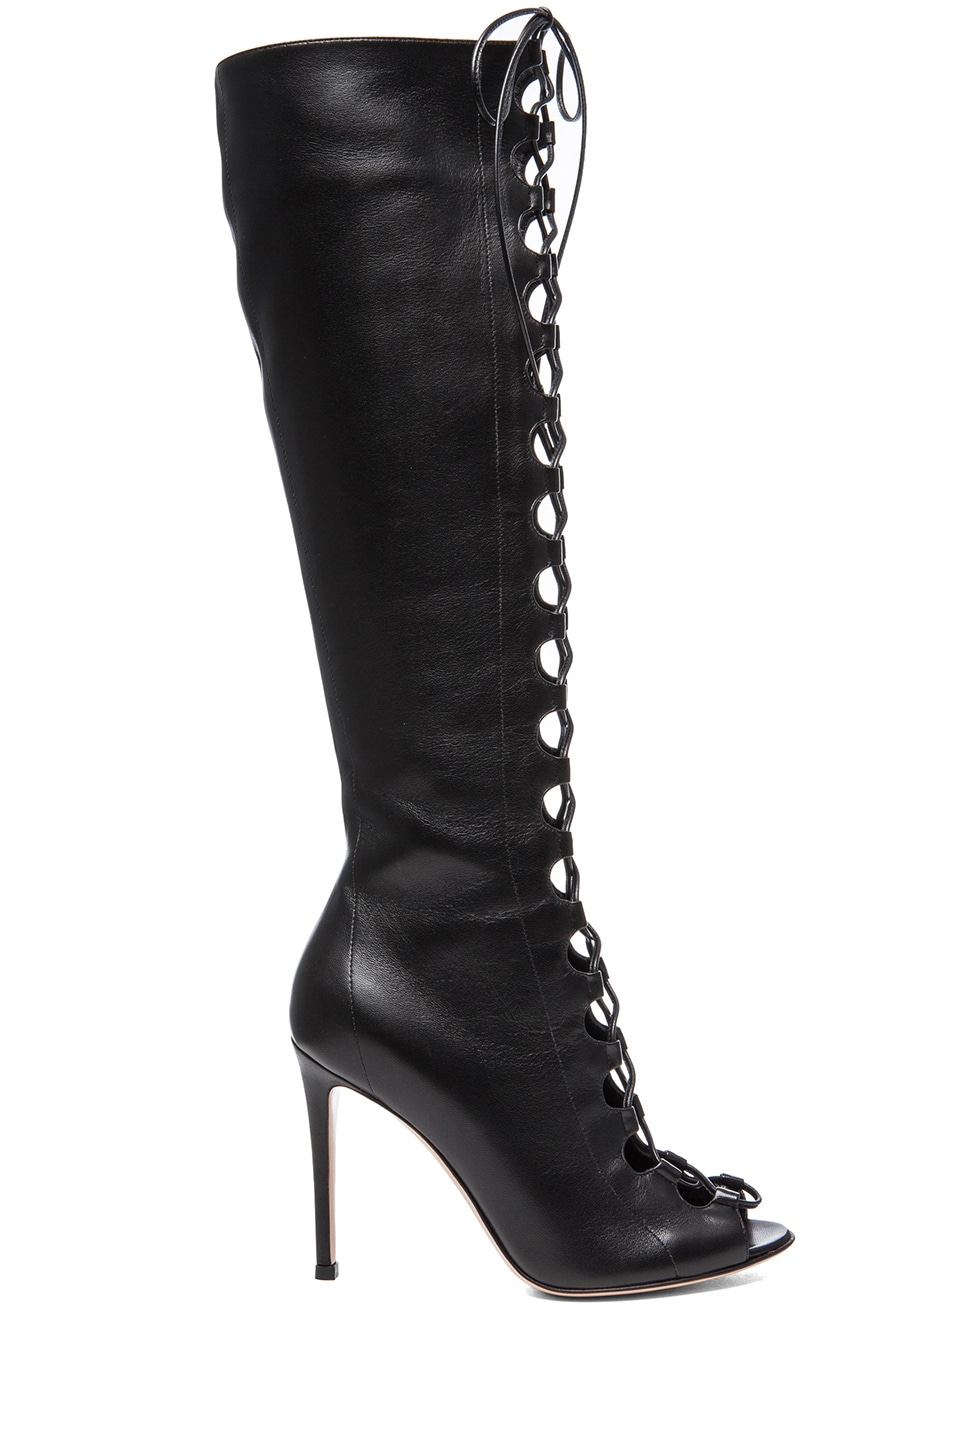 Image 1 of Gianvito Rossi Nappa Leather Lace Up Boots in Nero